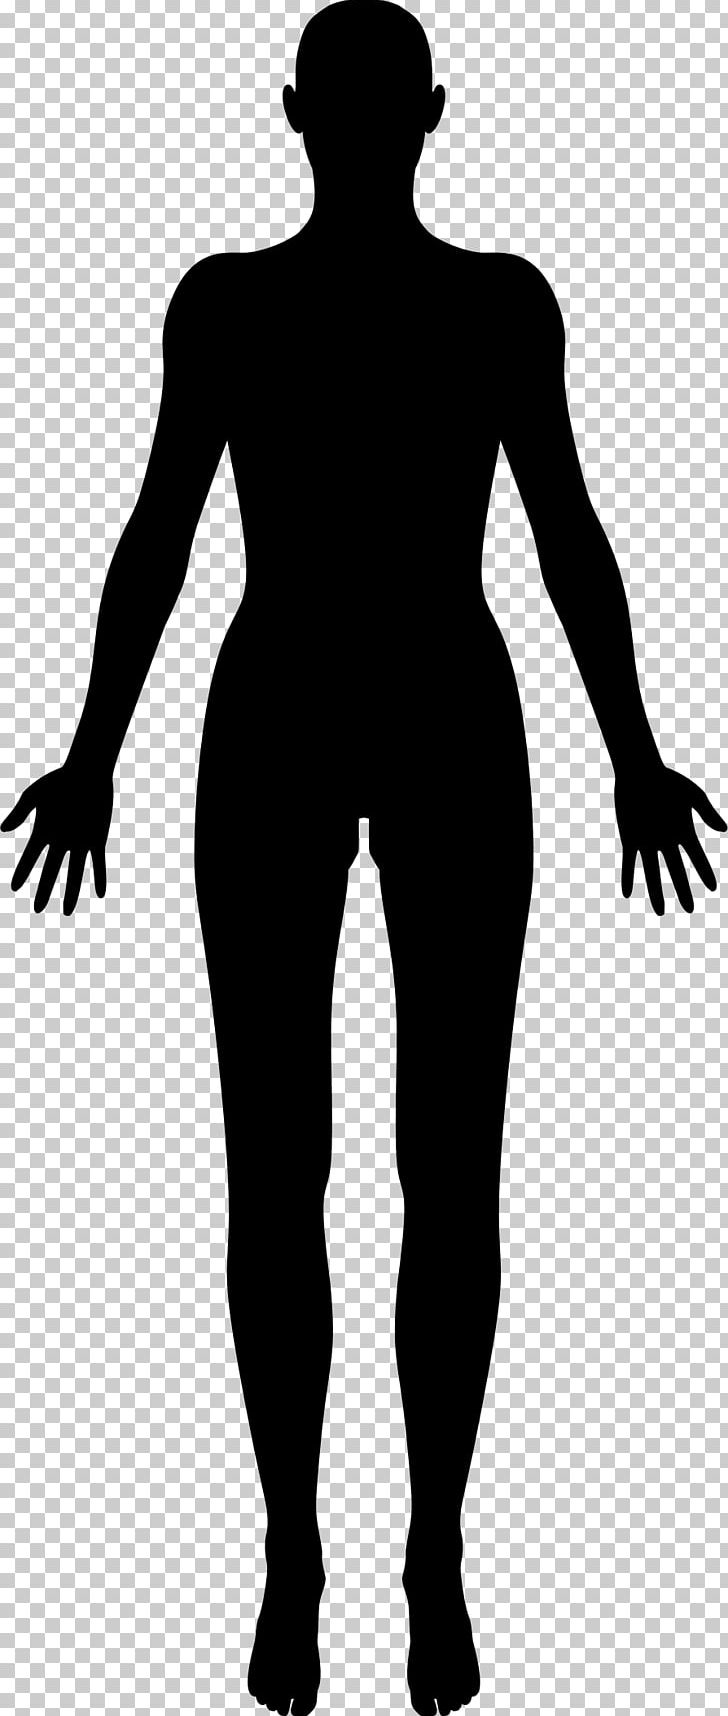 Female Body Shape Human Body Silhouette PNG, Clipart, Anatomy.